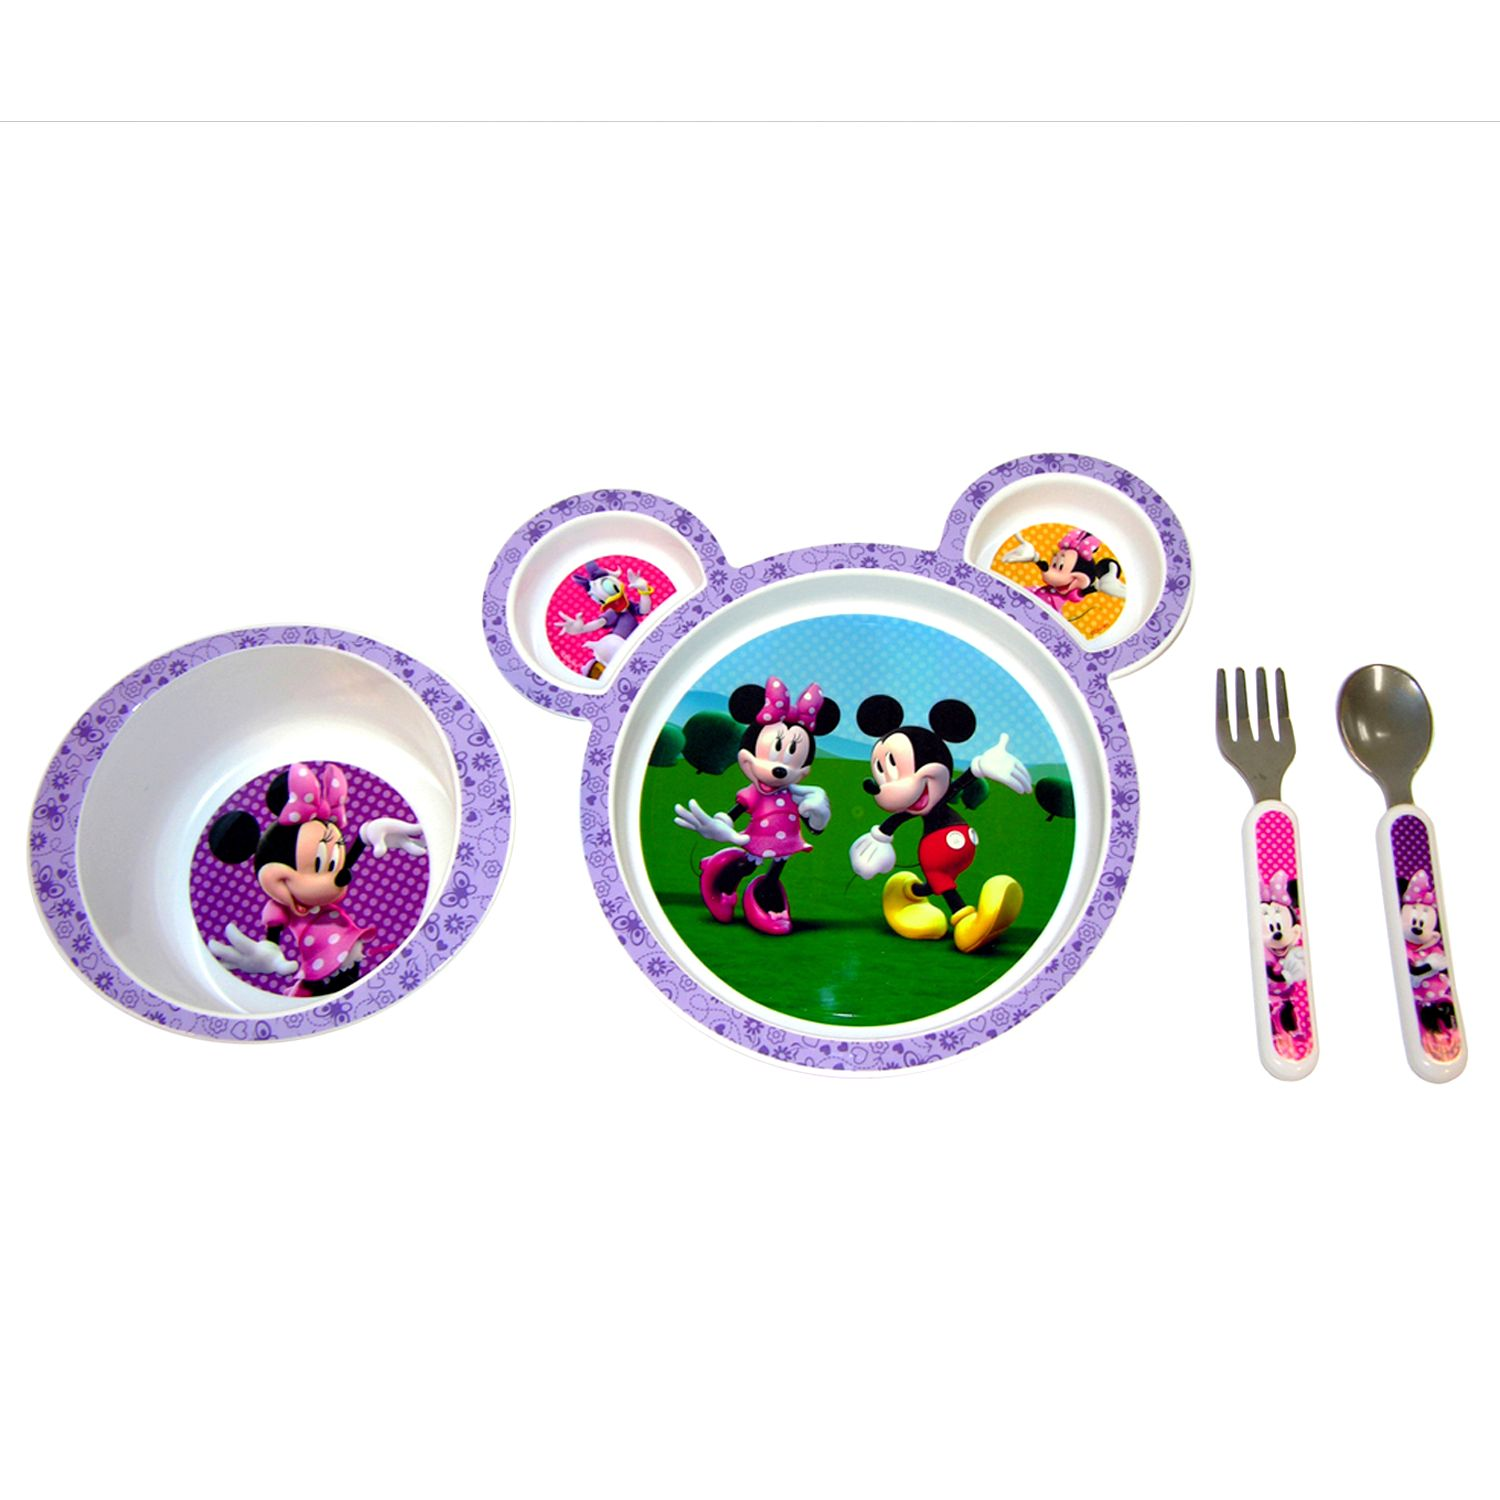 Disney Mickey Mouse \u0026 Friends Minnie Mouse 4-pc. Feeding Set by The First Years  sc 1 st  Kohl\u0027s & Mickey Mouse \u0026 Friends Minnie Mouse 4-pc. Feeding Set by The First Years